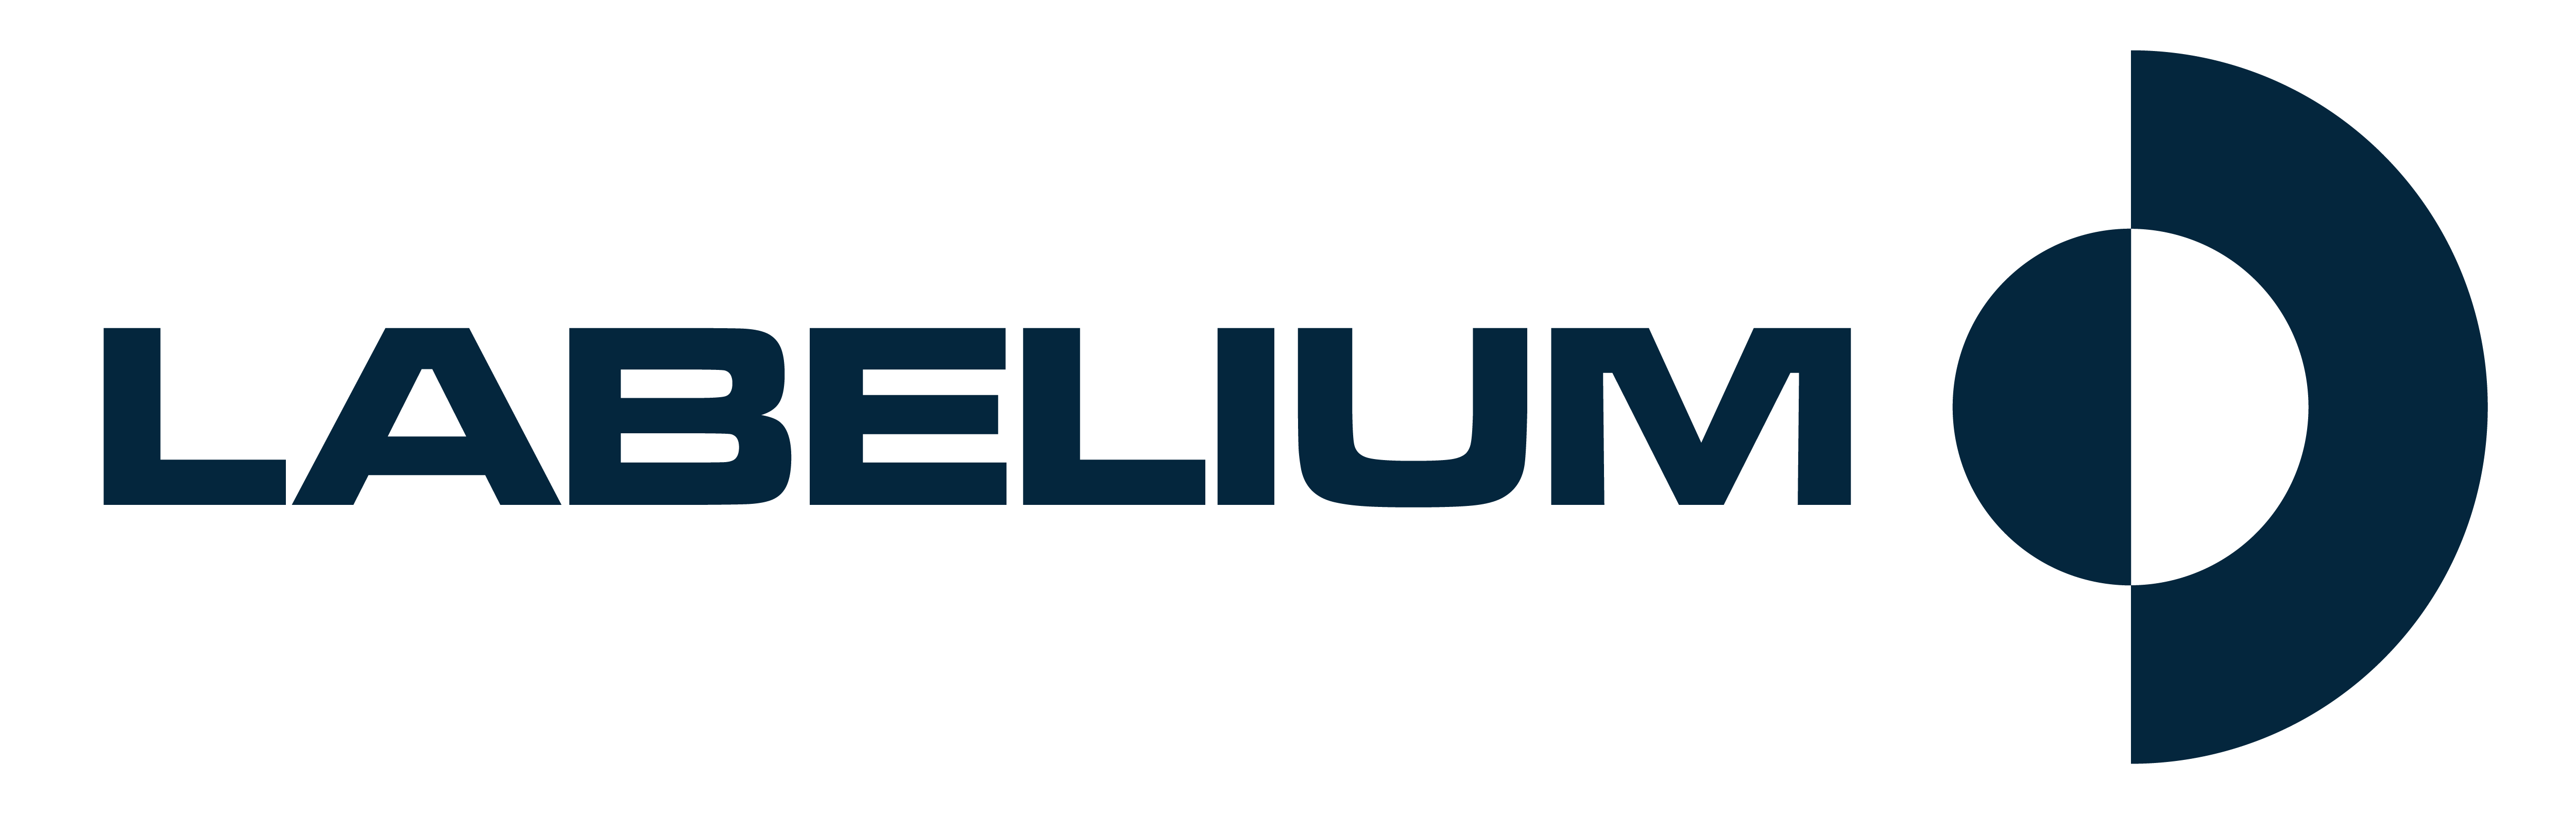 Labelium | Digital Marketing Blog